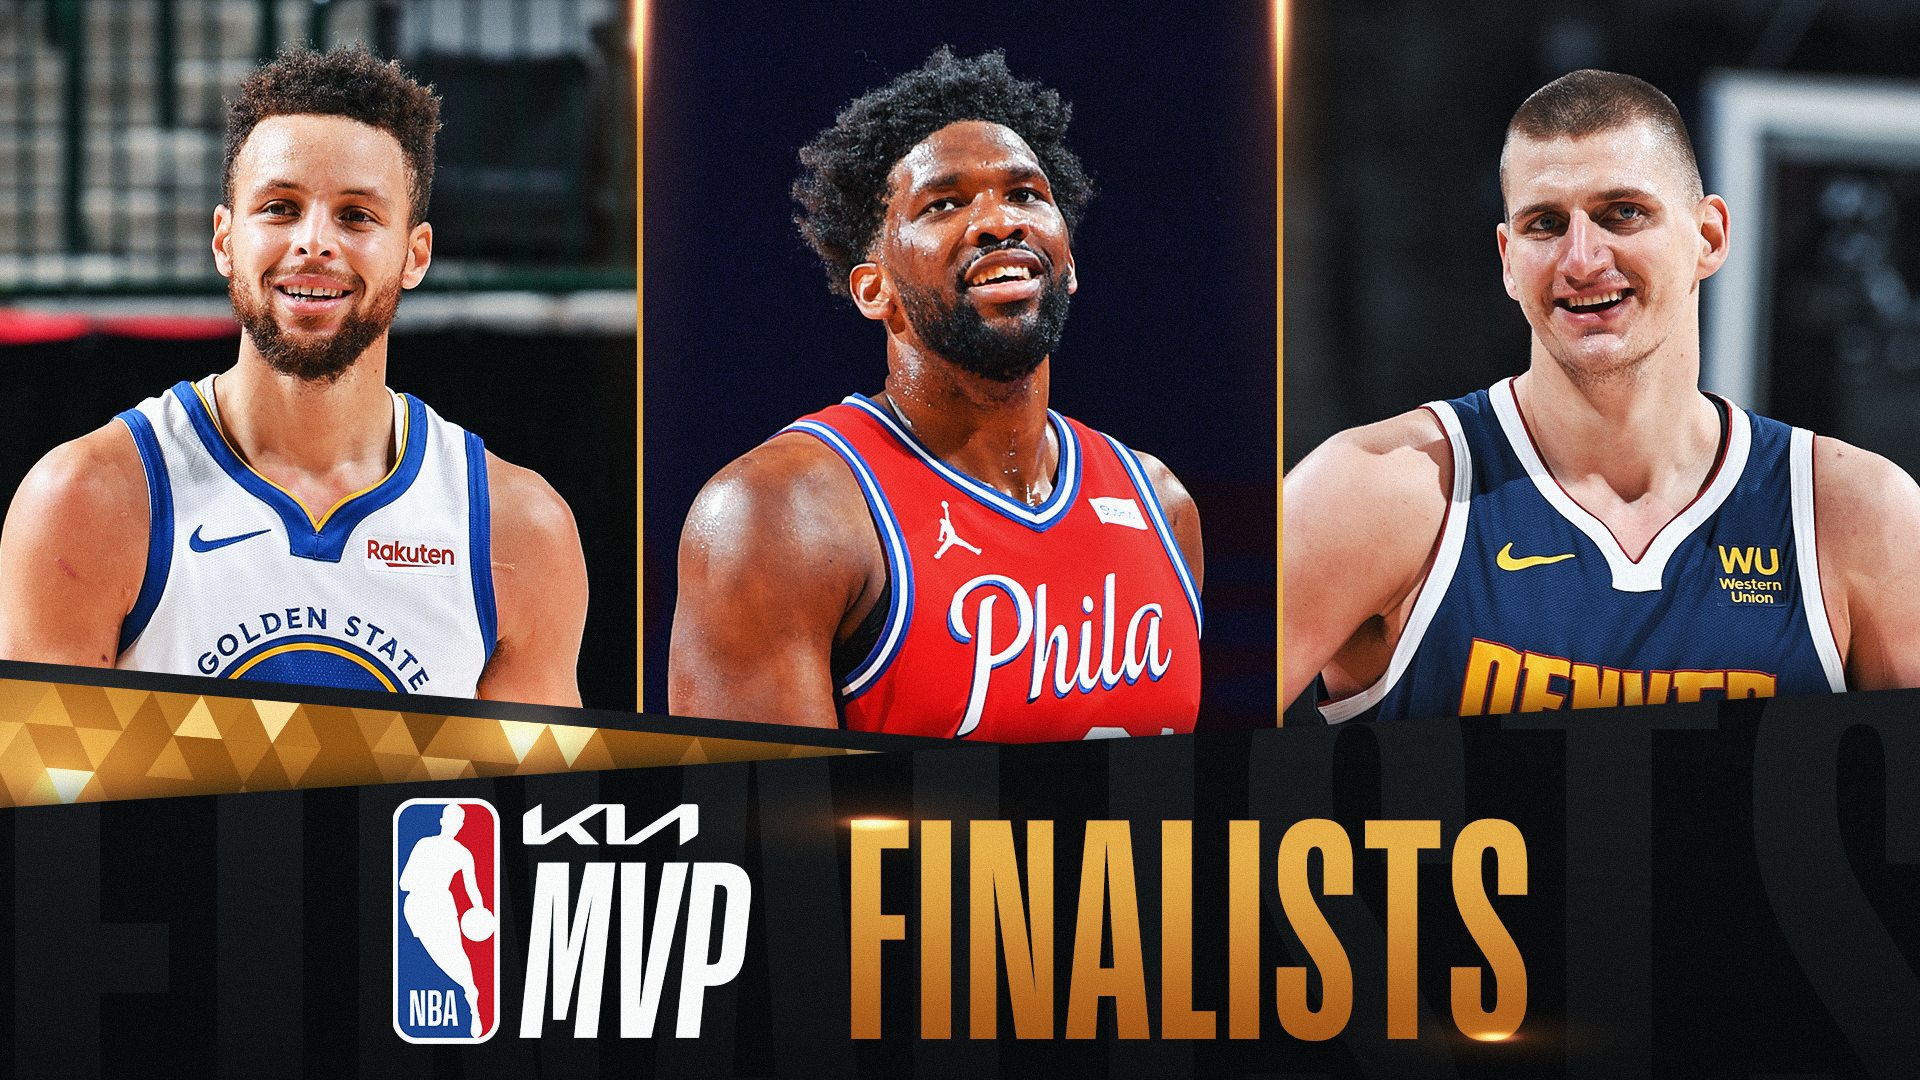 Finalists announced for 2020-21 NBA awards